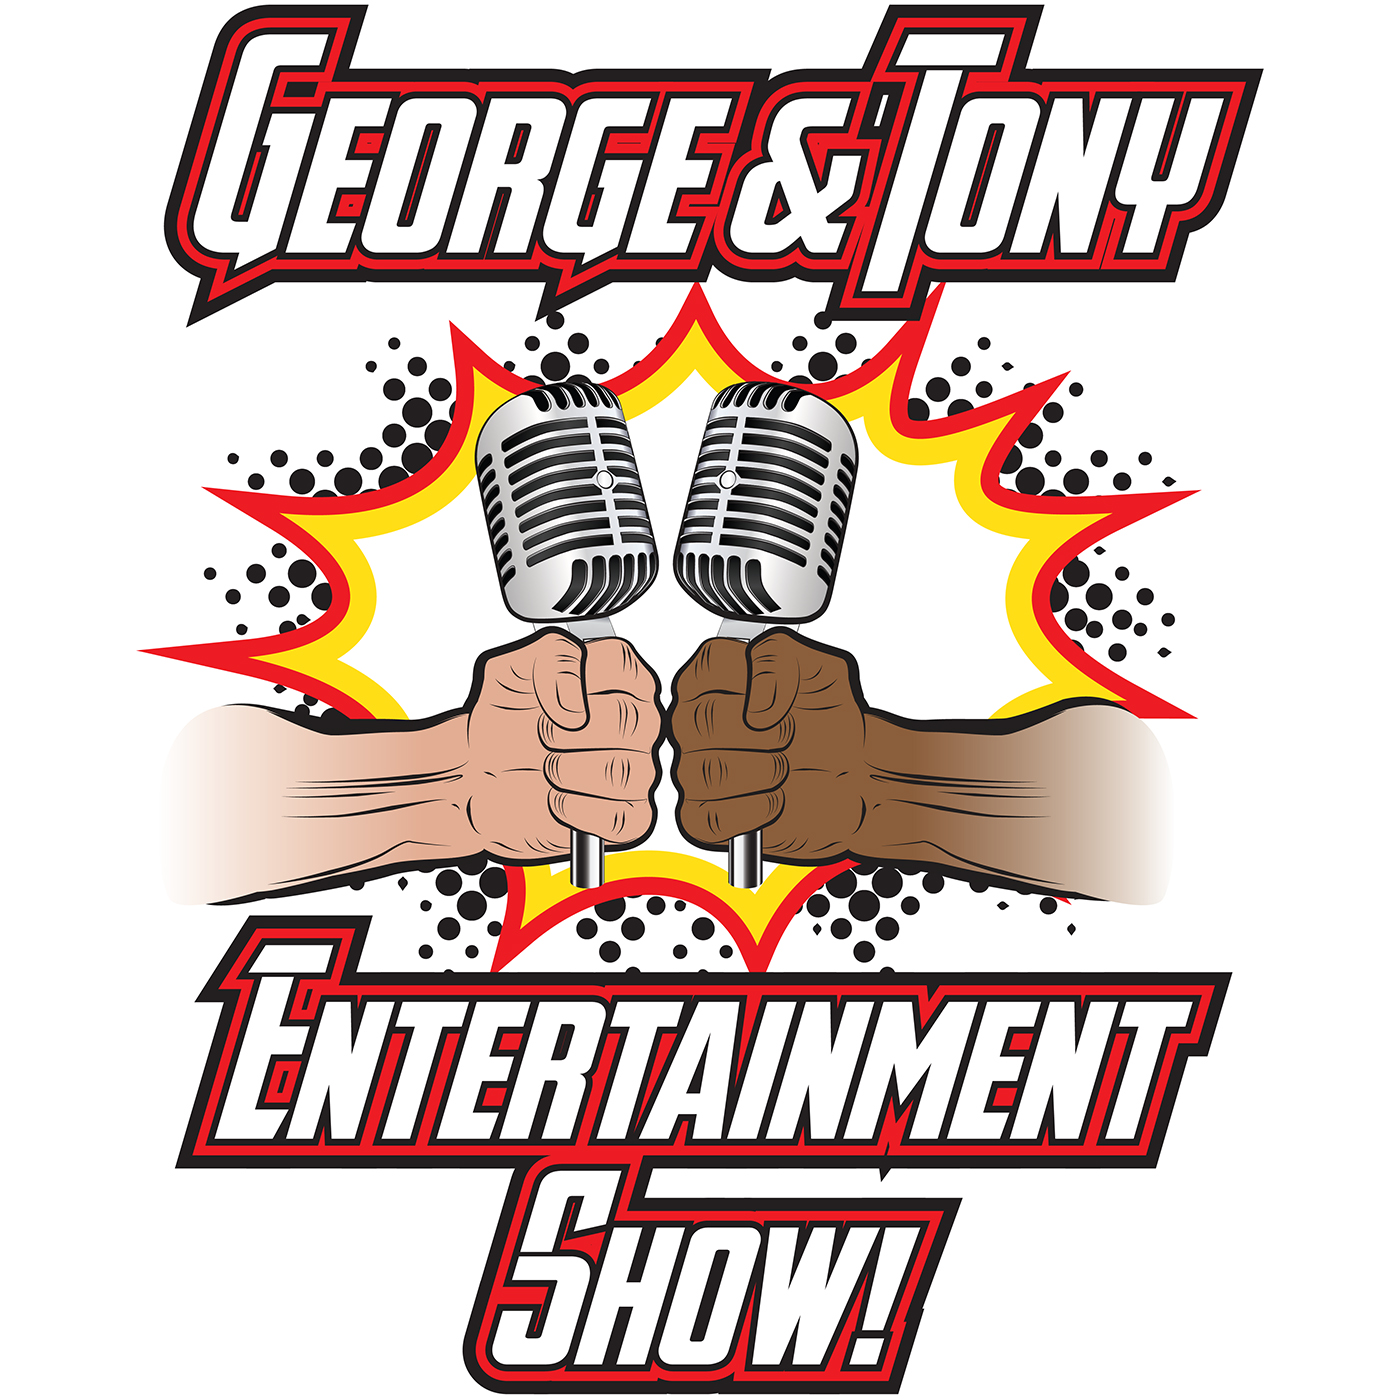 George and Tony Entertainment Show #132